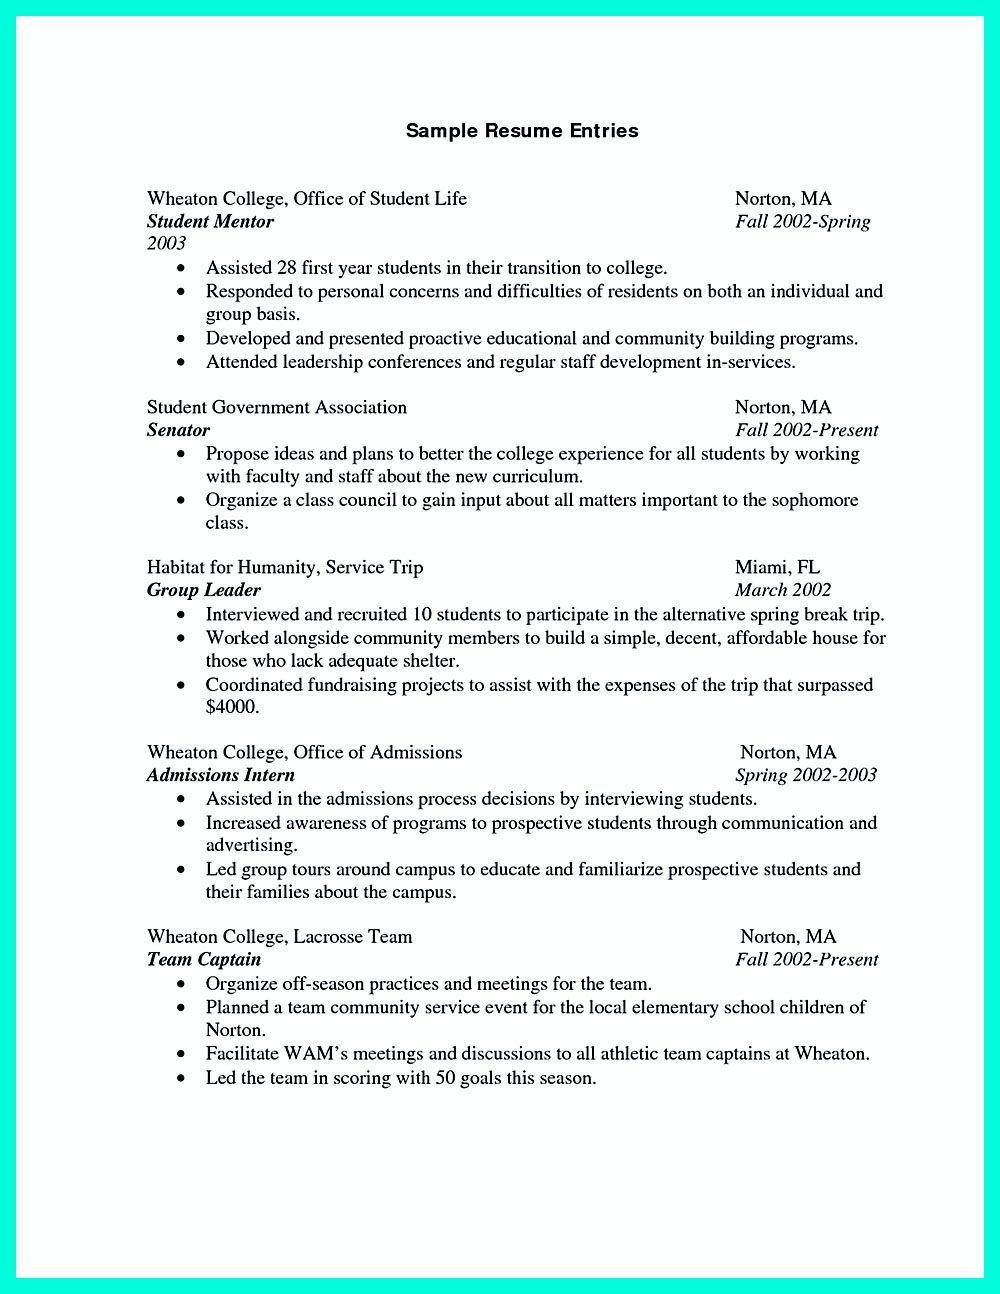 Resume Templates For Recent College Graduates College Graduate Resume Is Neededif You Think Resume Is Not